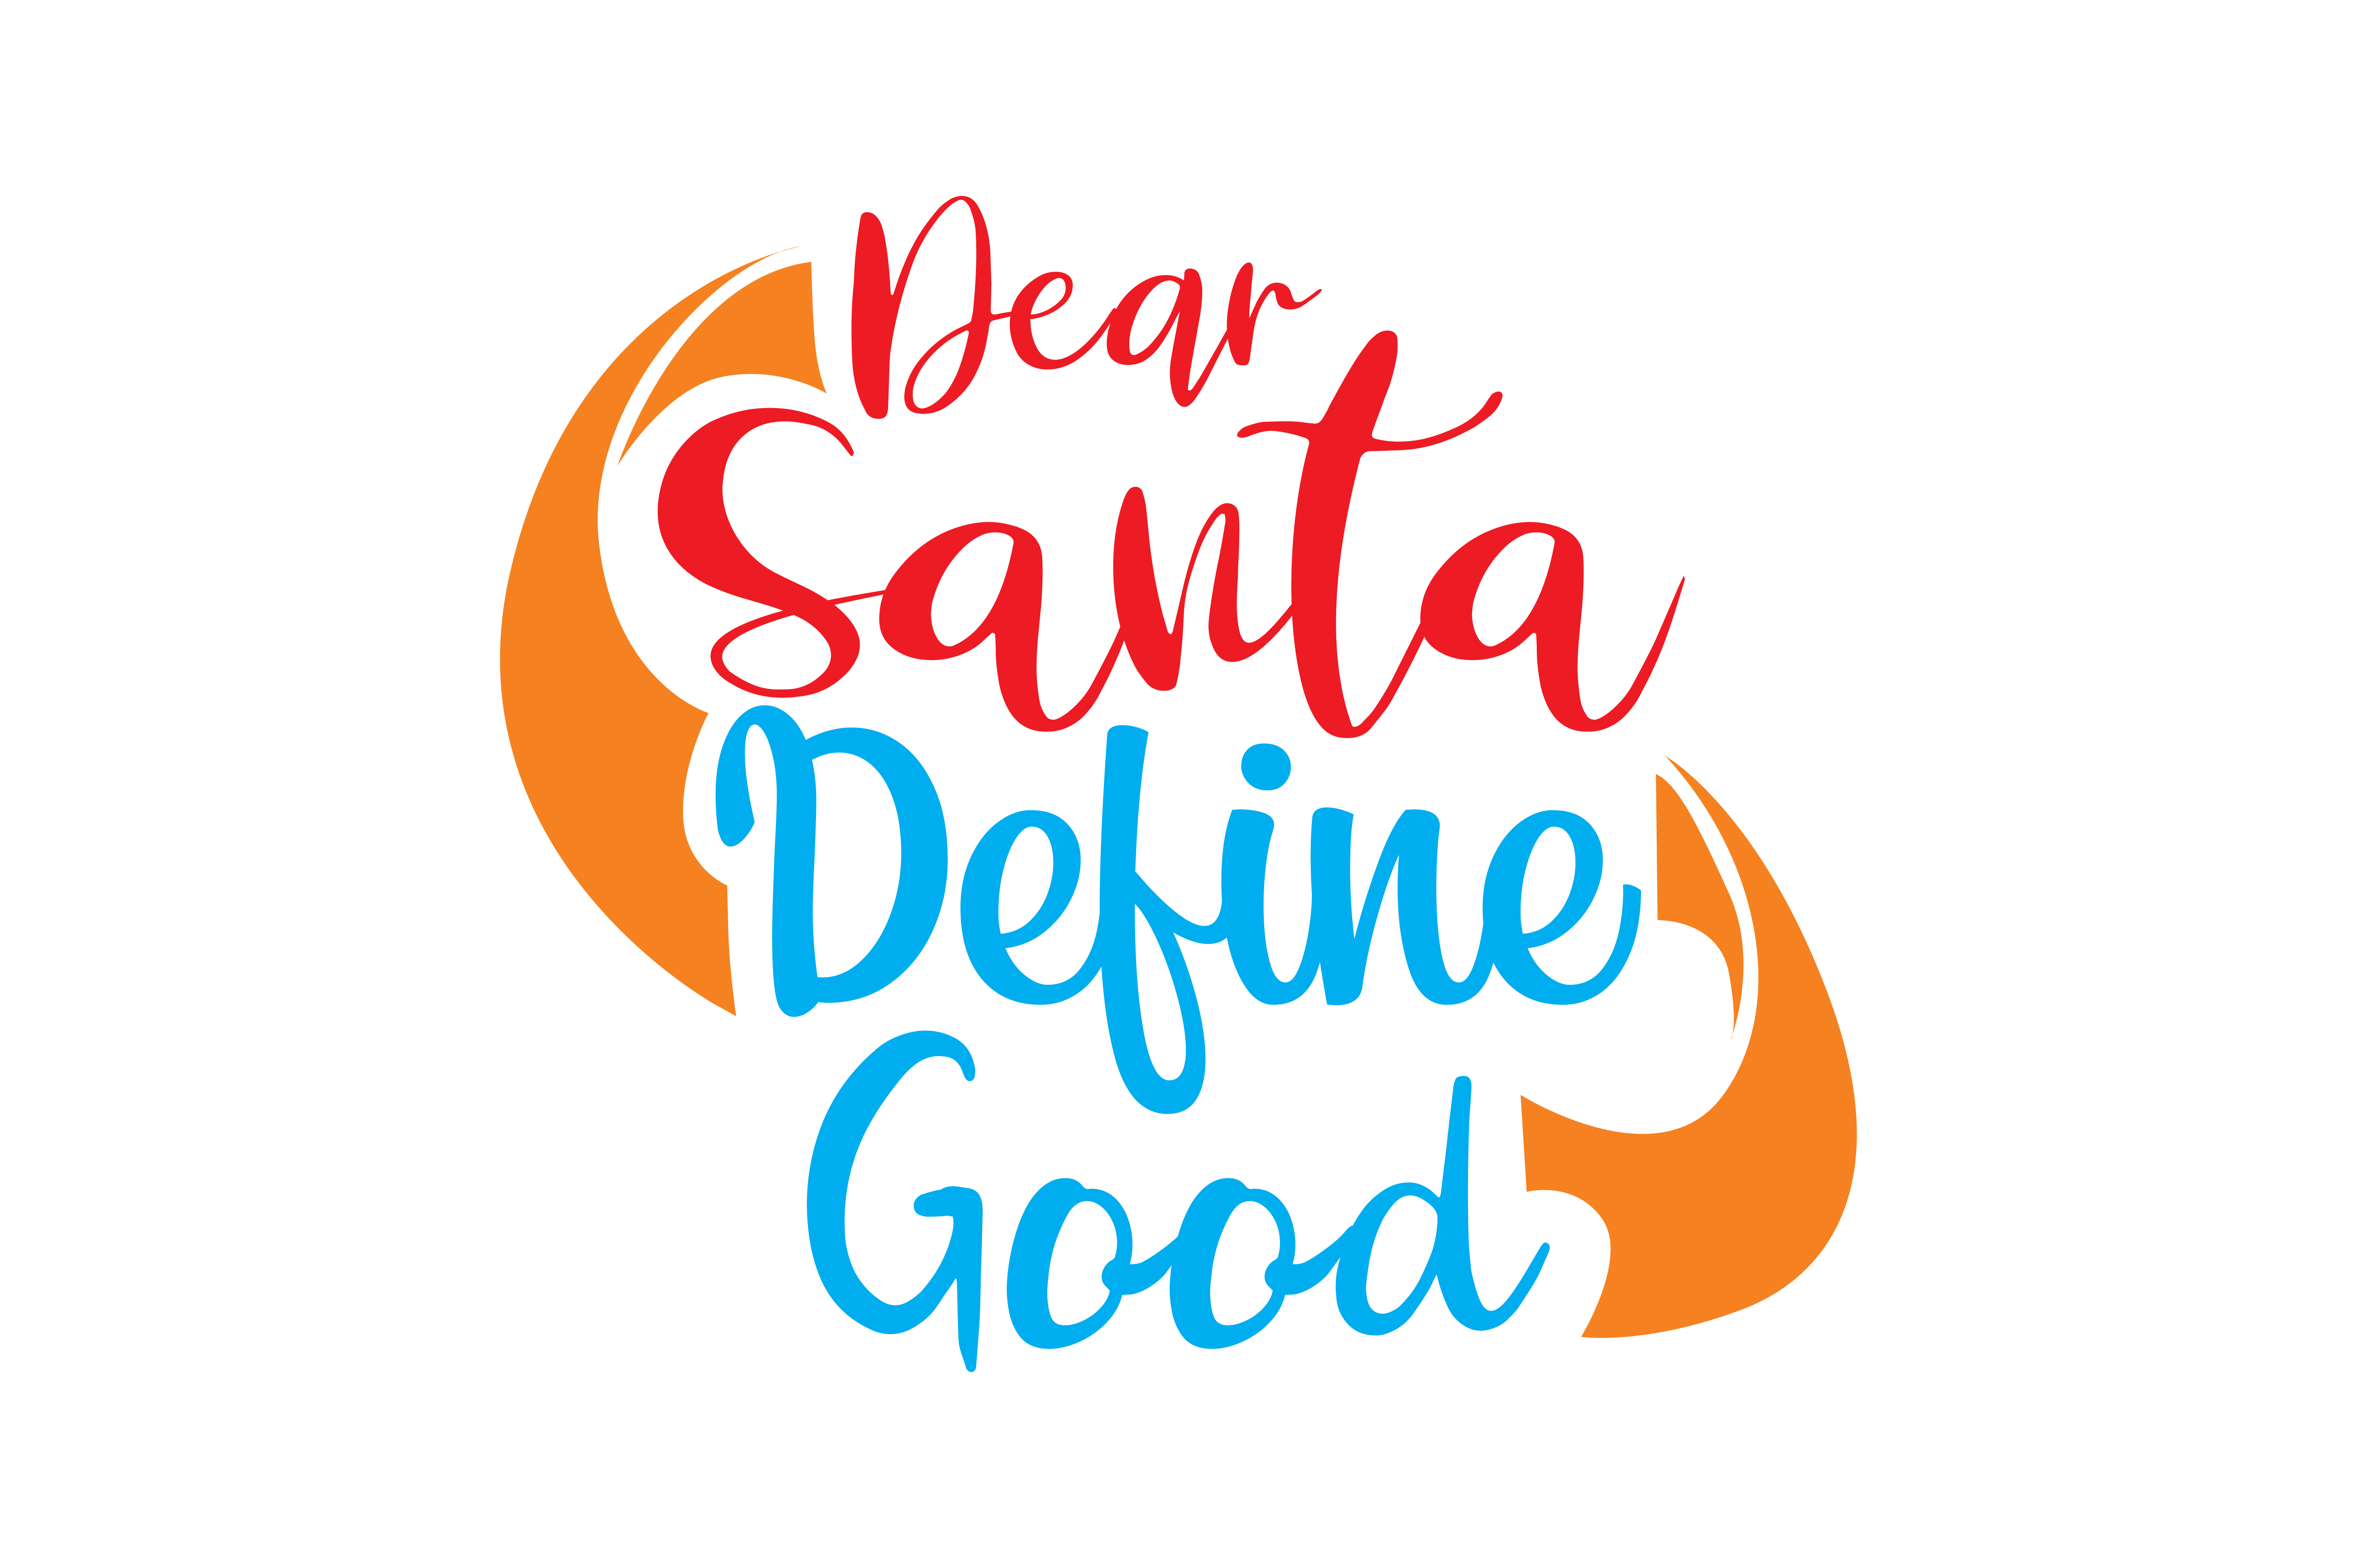 Download Free Dear Santa Define Good Graphic By Thelucky Creative Fabrica for Cricut Explore, Silhouette and other cutting machines.